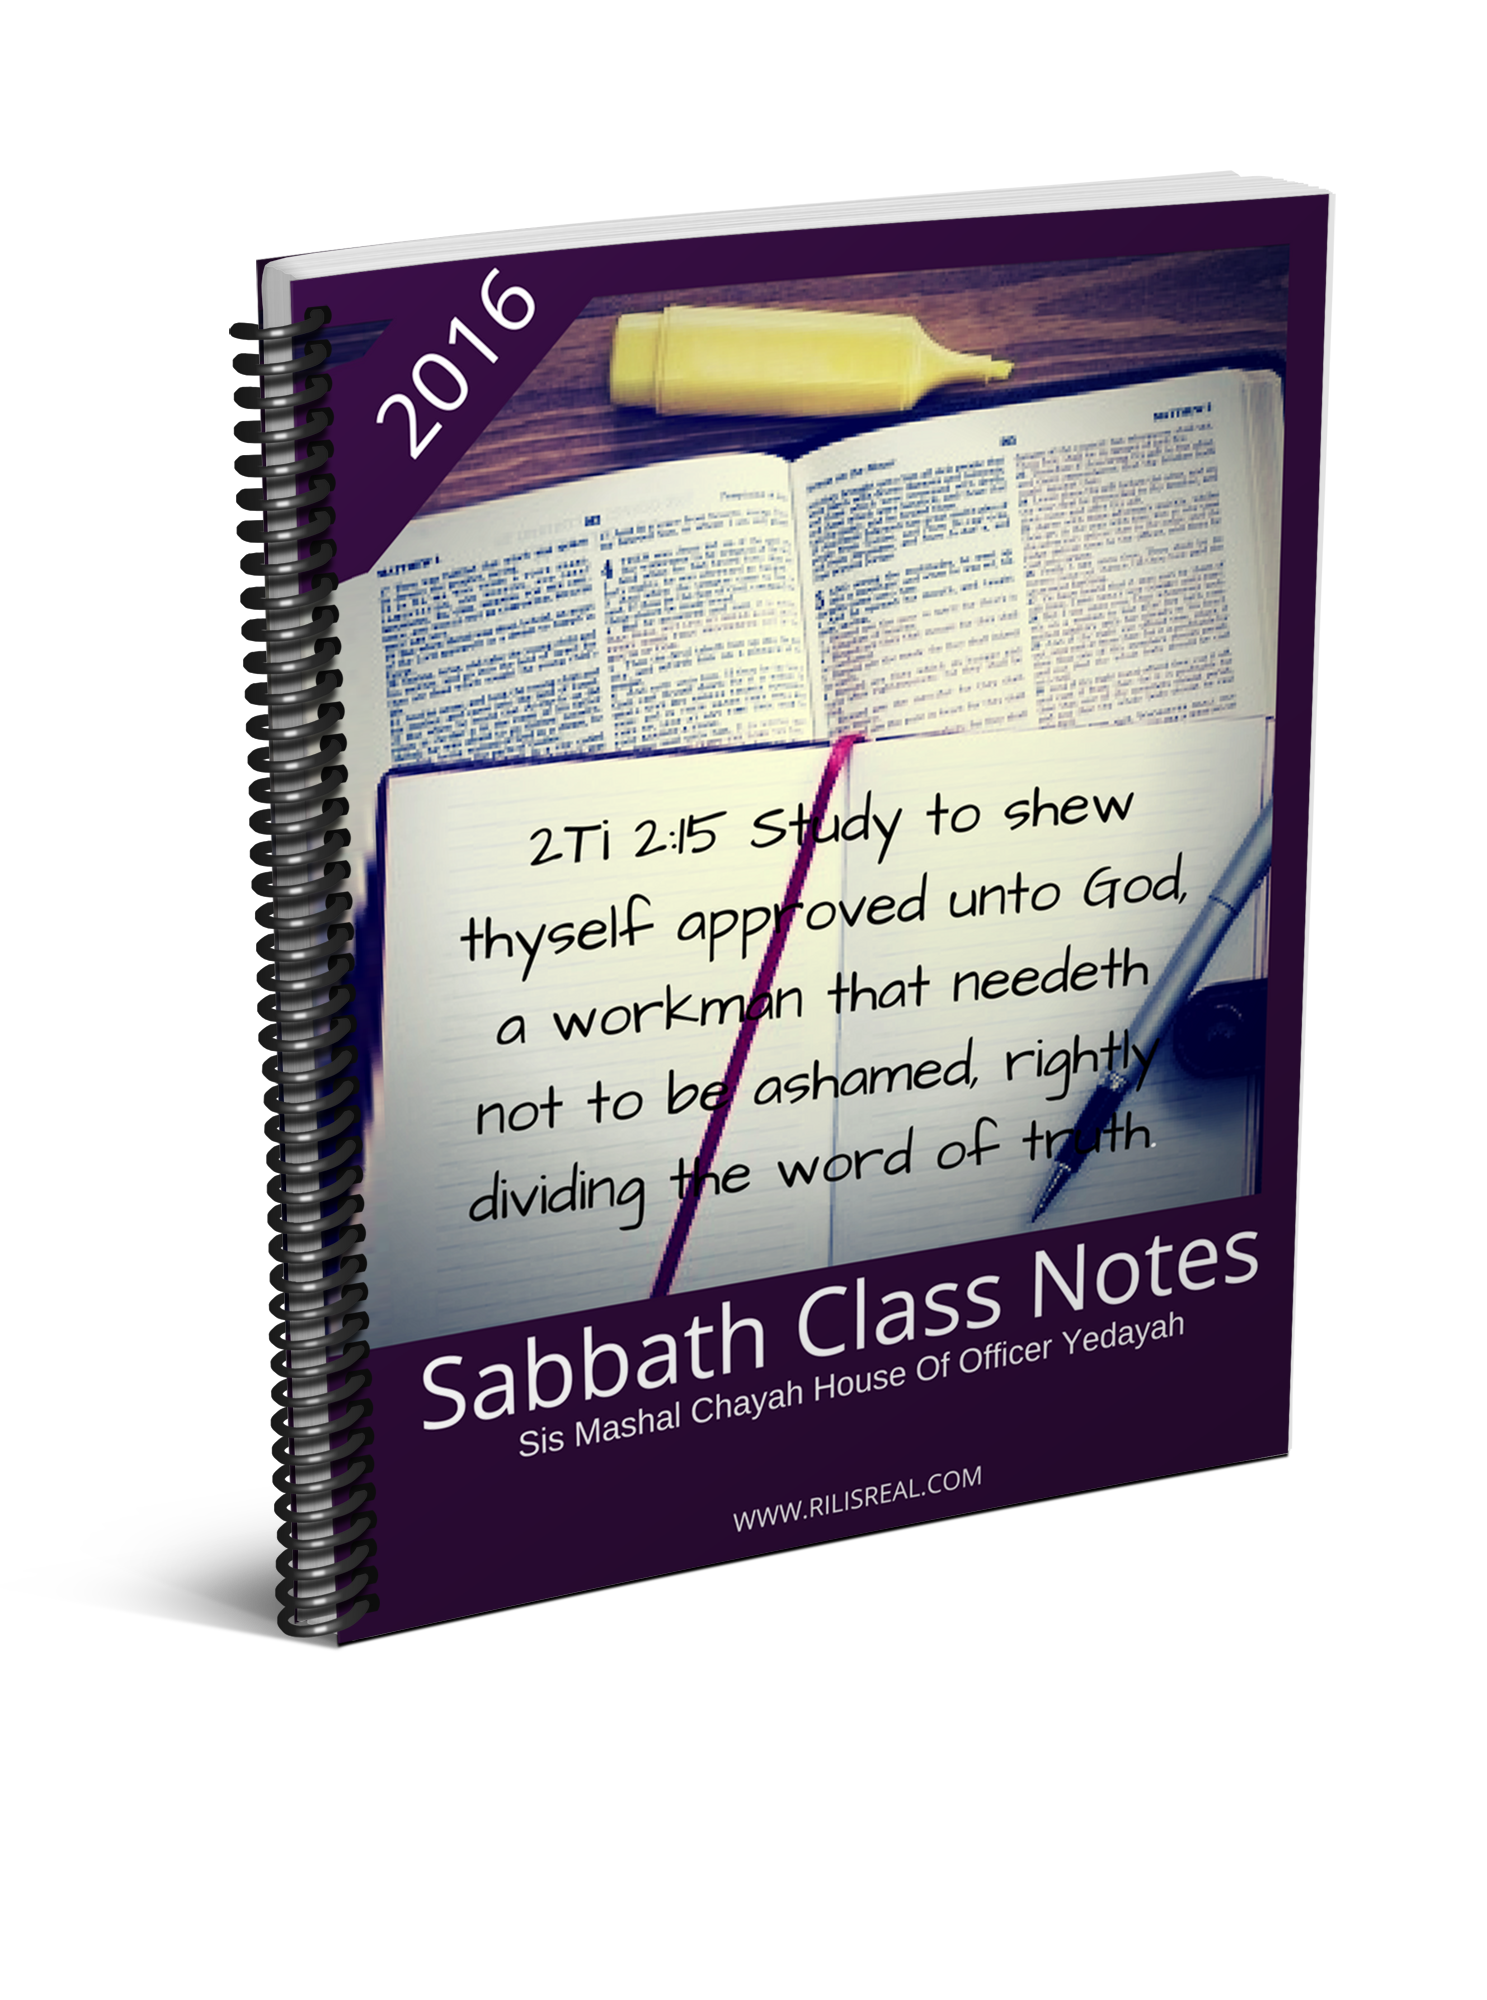 2016 Sabbath Class Notes